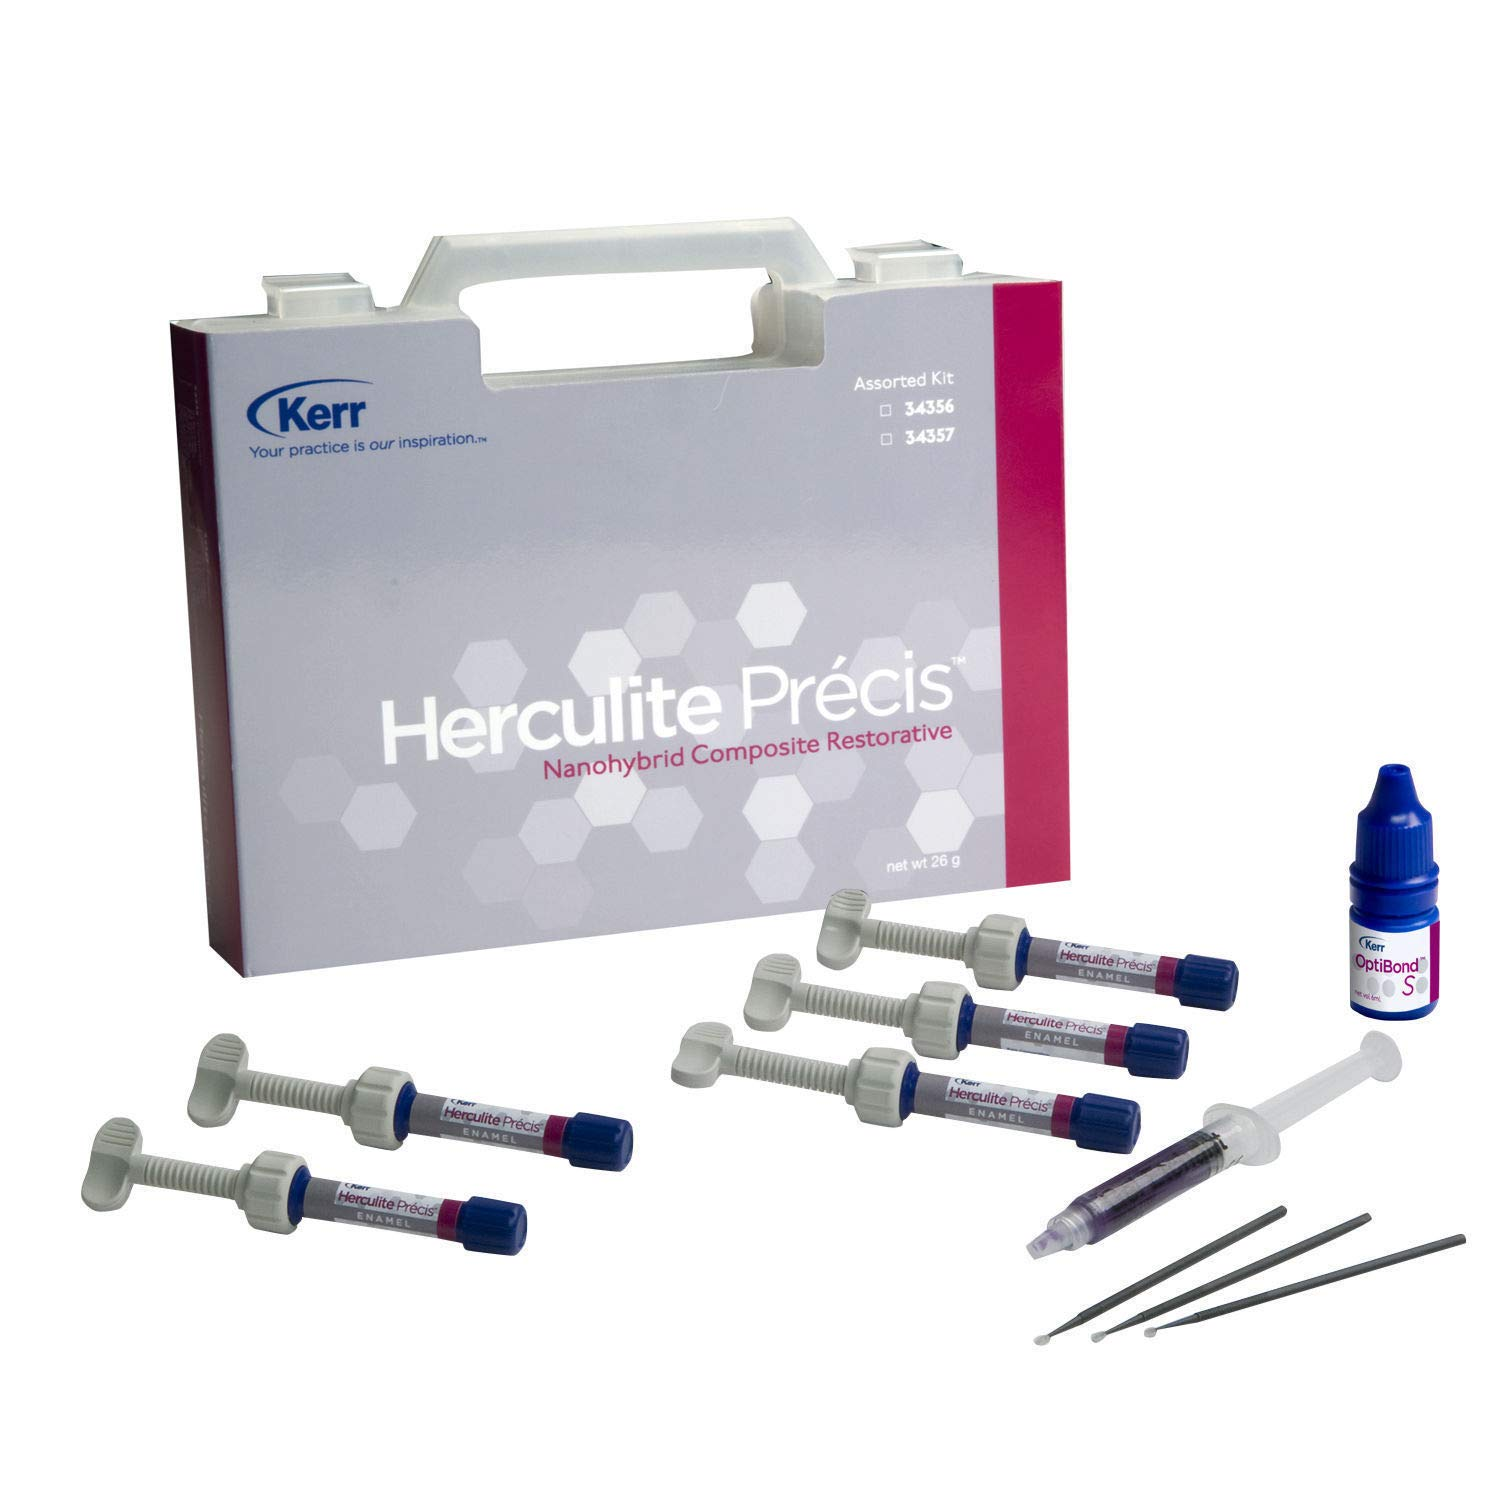 5 Syringes+ 1 Optibond S+ 2 Gel Kerr Herculite Precis Composite Restorative Kit